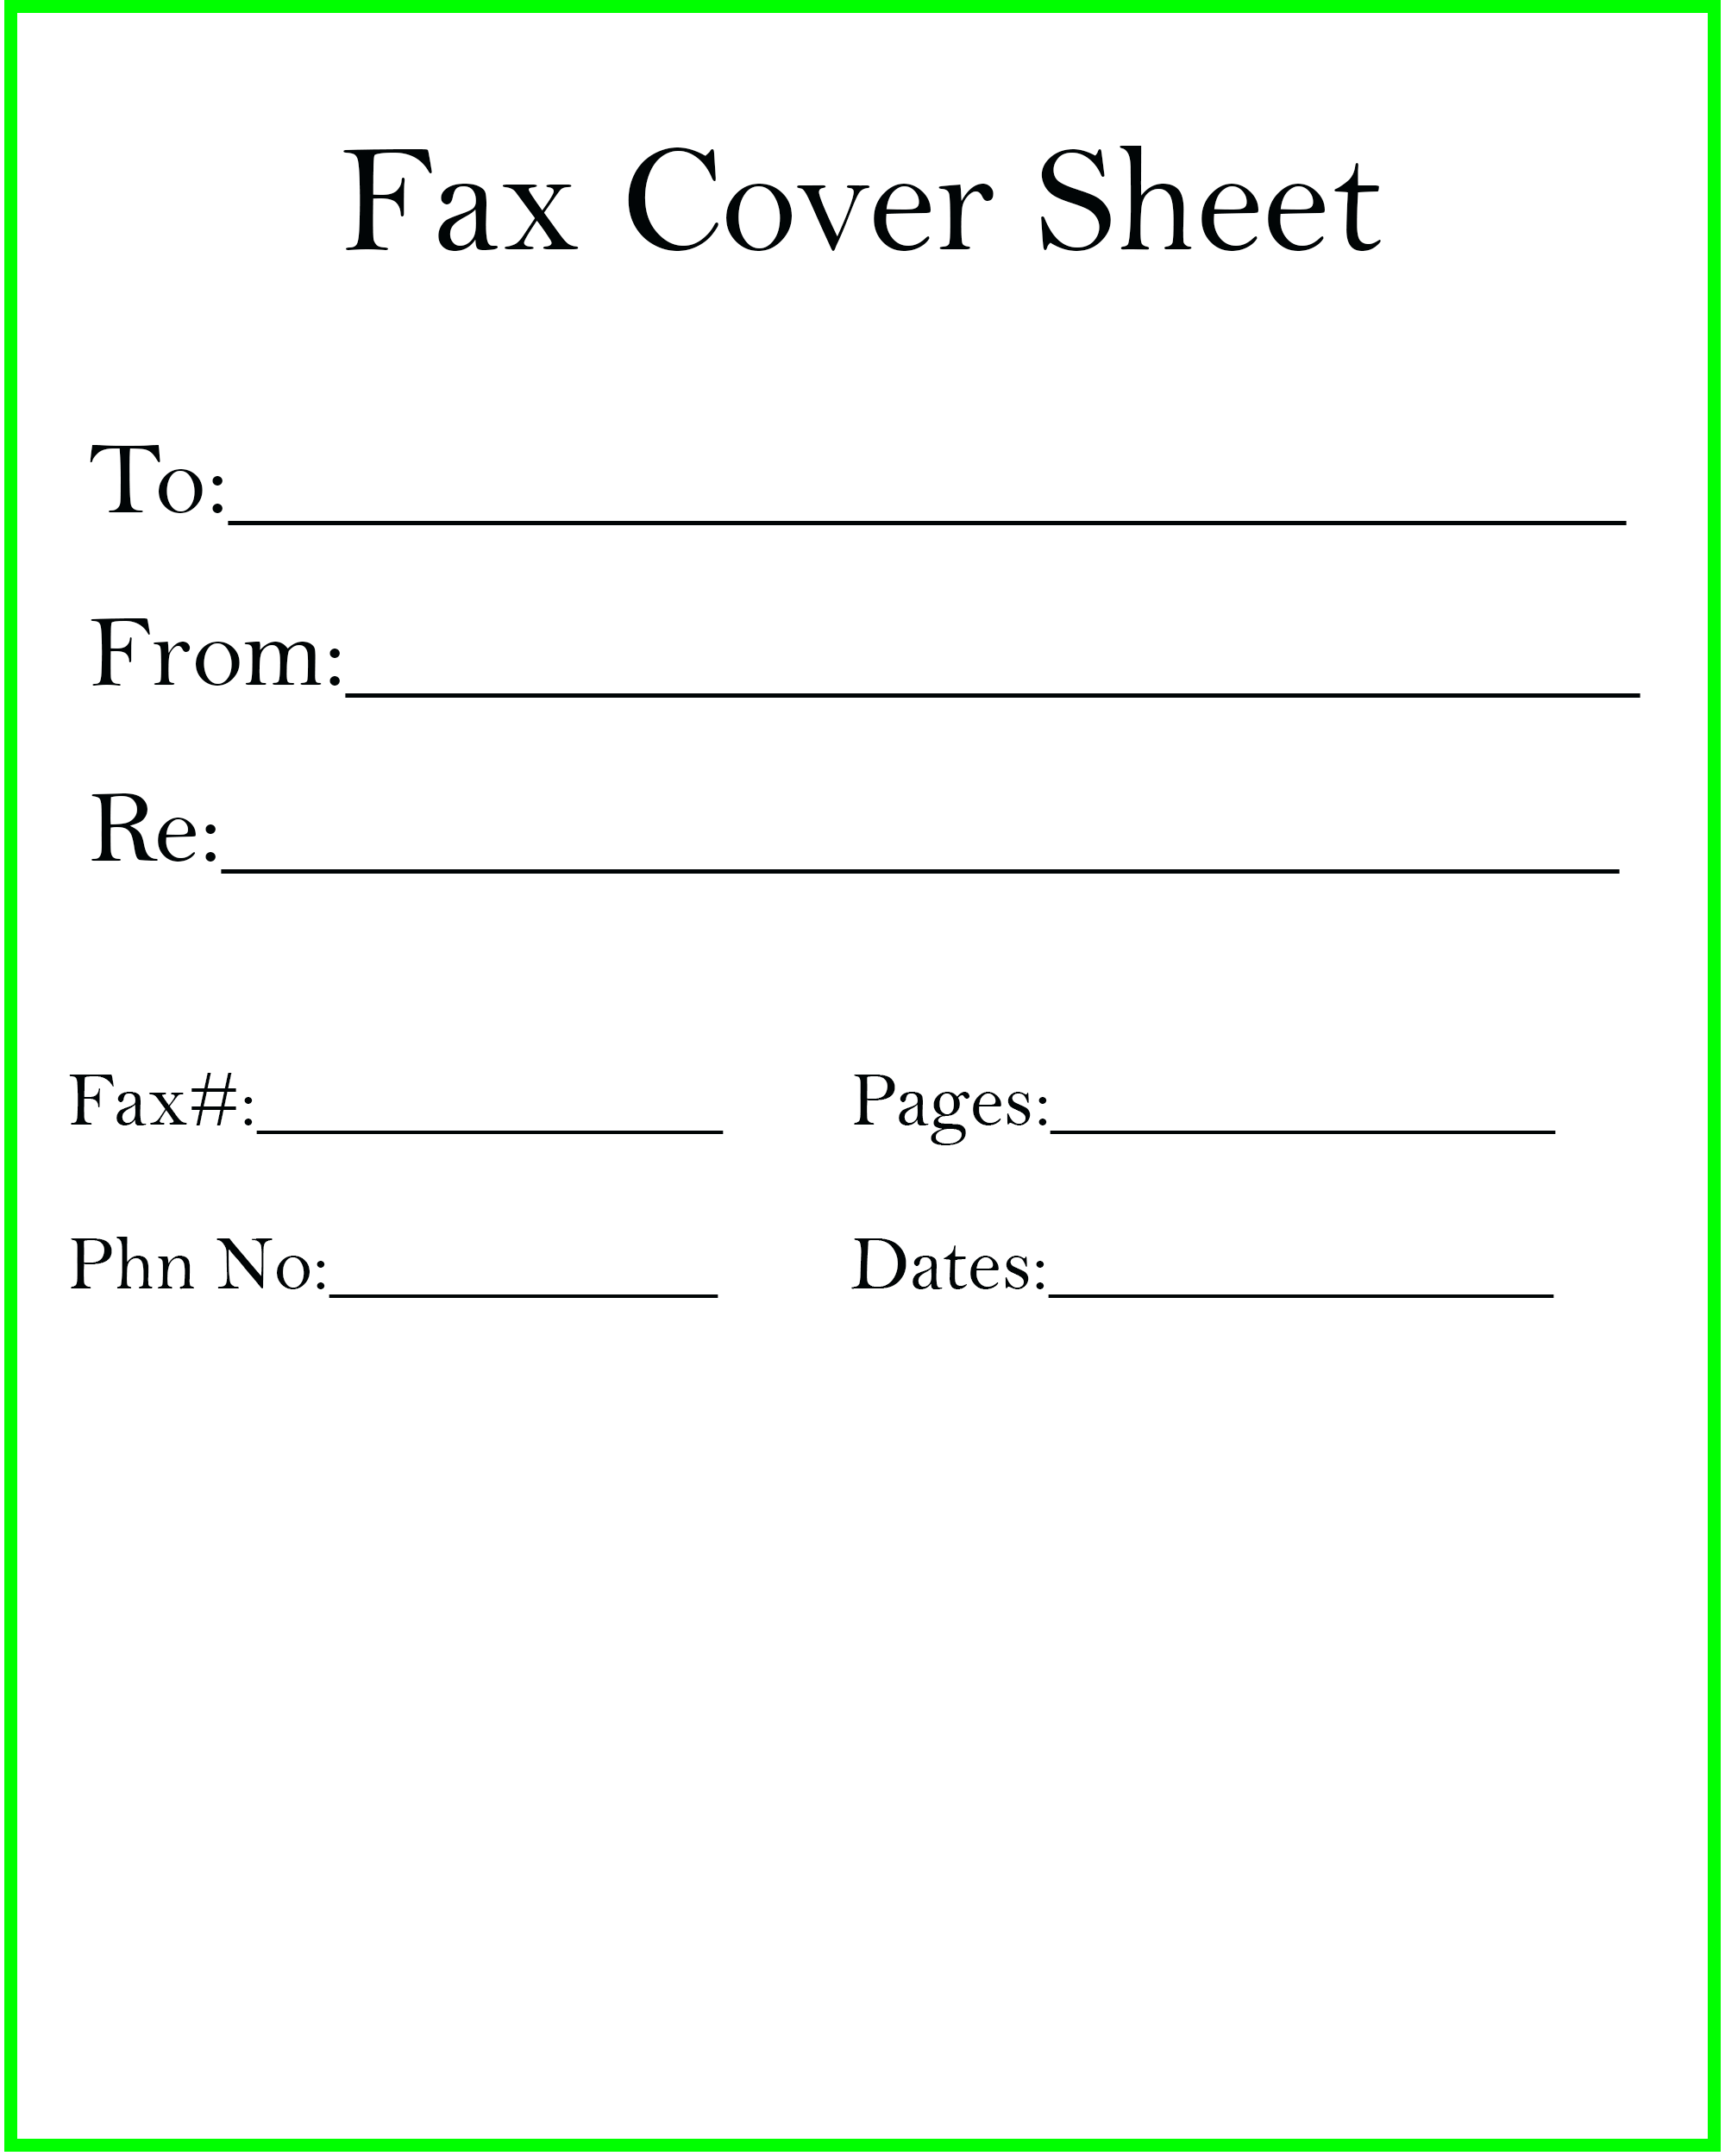 New How to Fill Out A Fax Cover Sheet in 2020 Cover